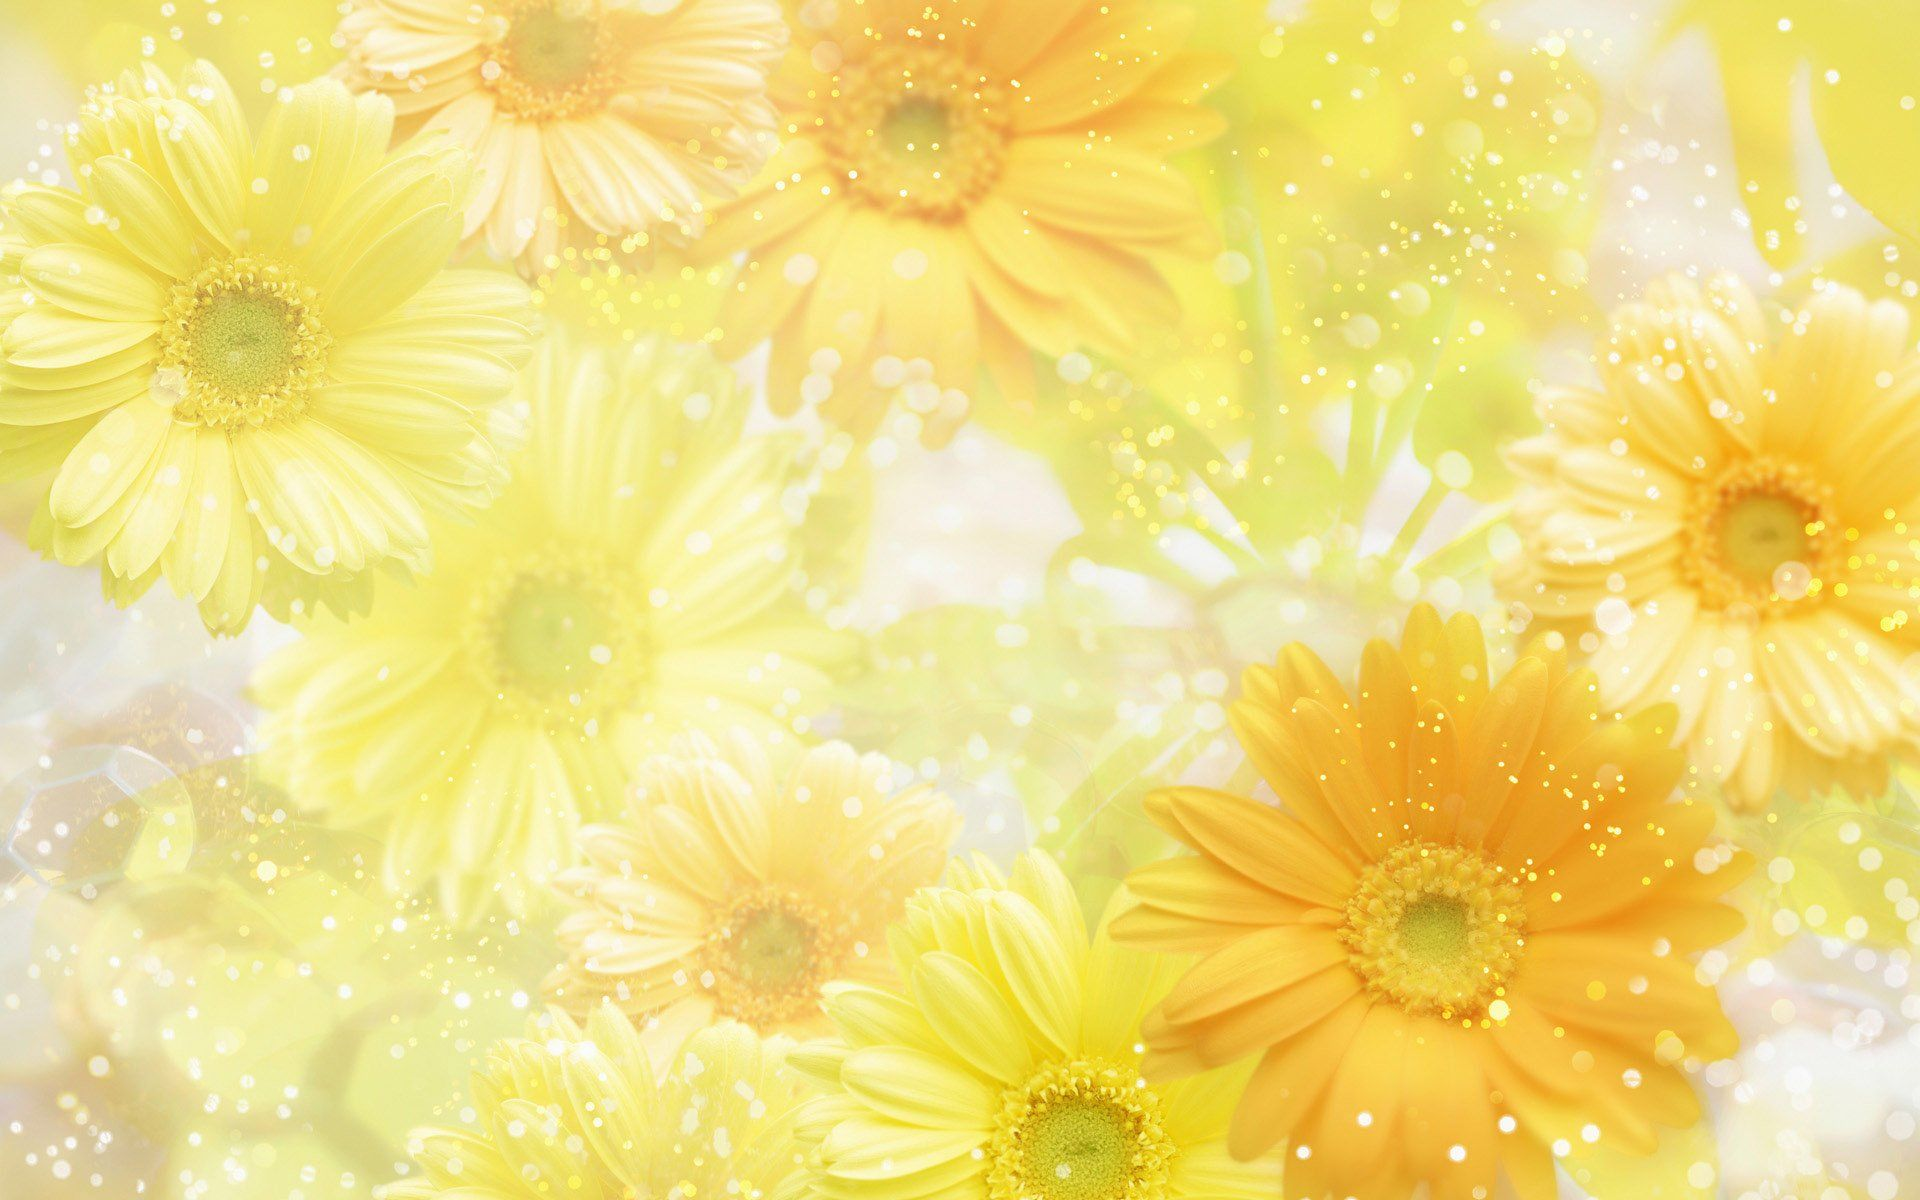 image detail for wallpaper background yellow nature 274868